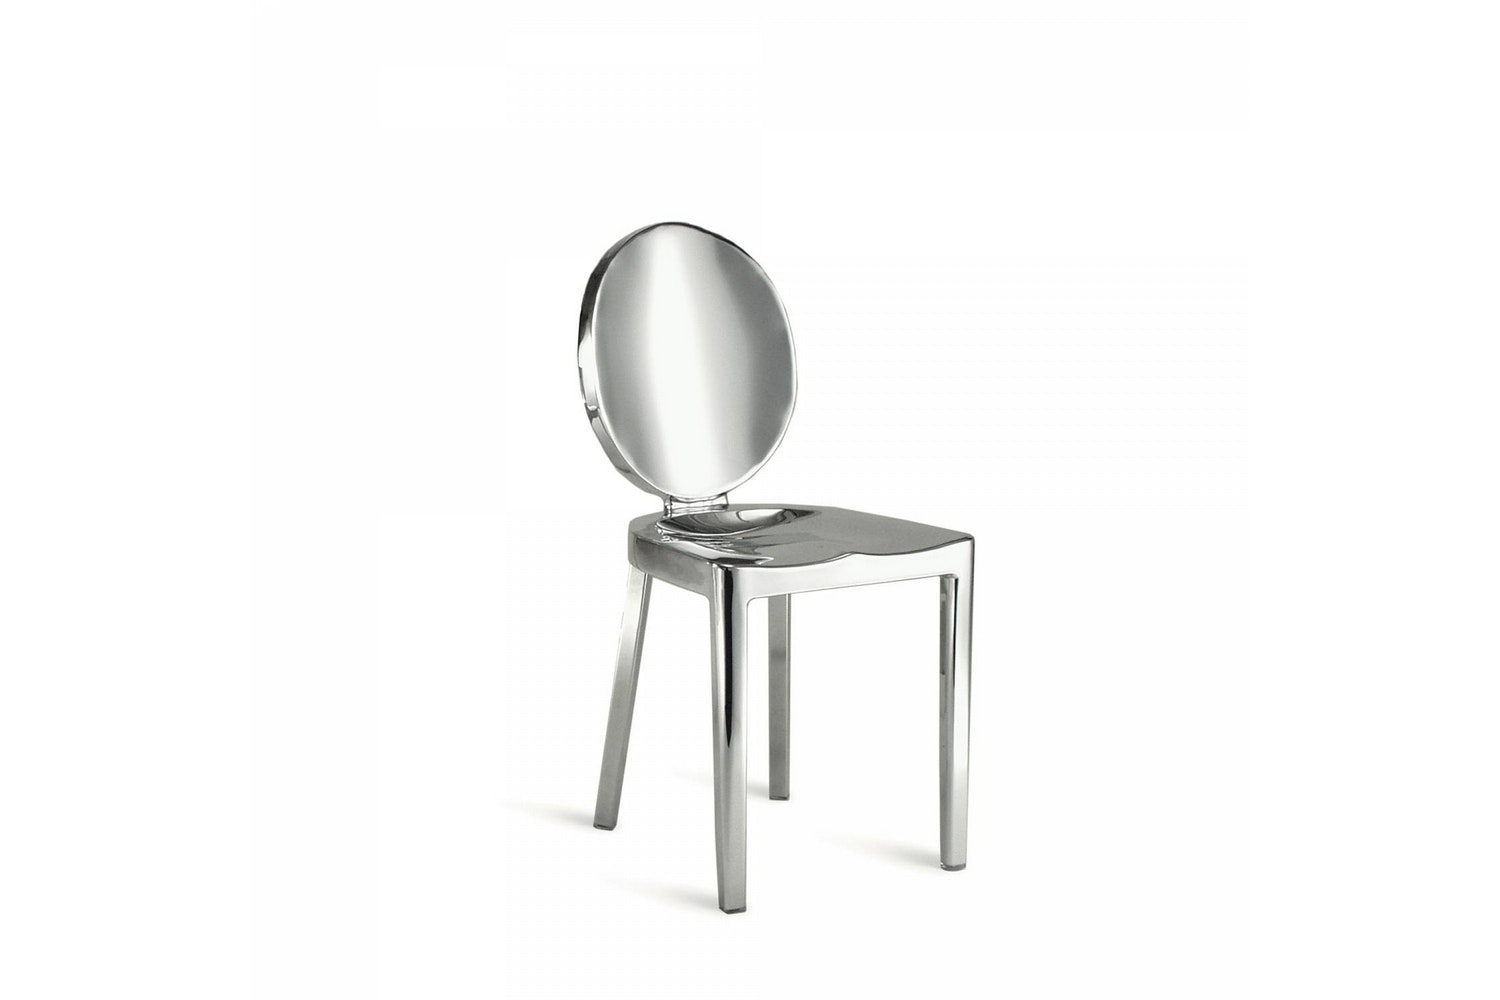 Kong Chair by Philippe Starck for Emeco